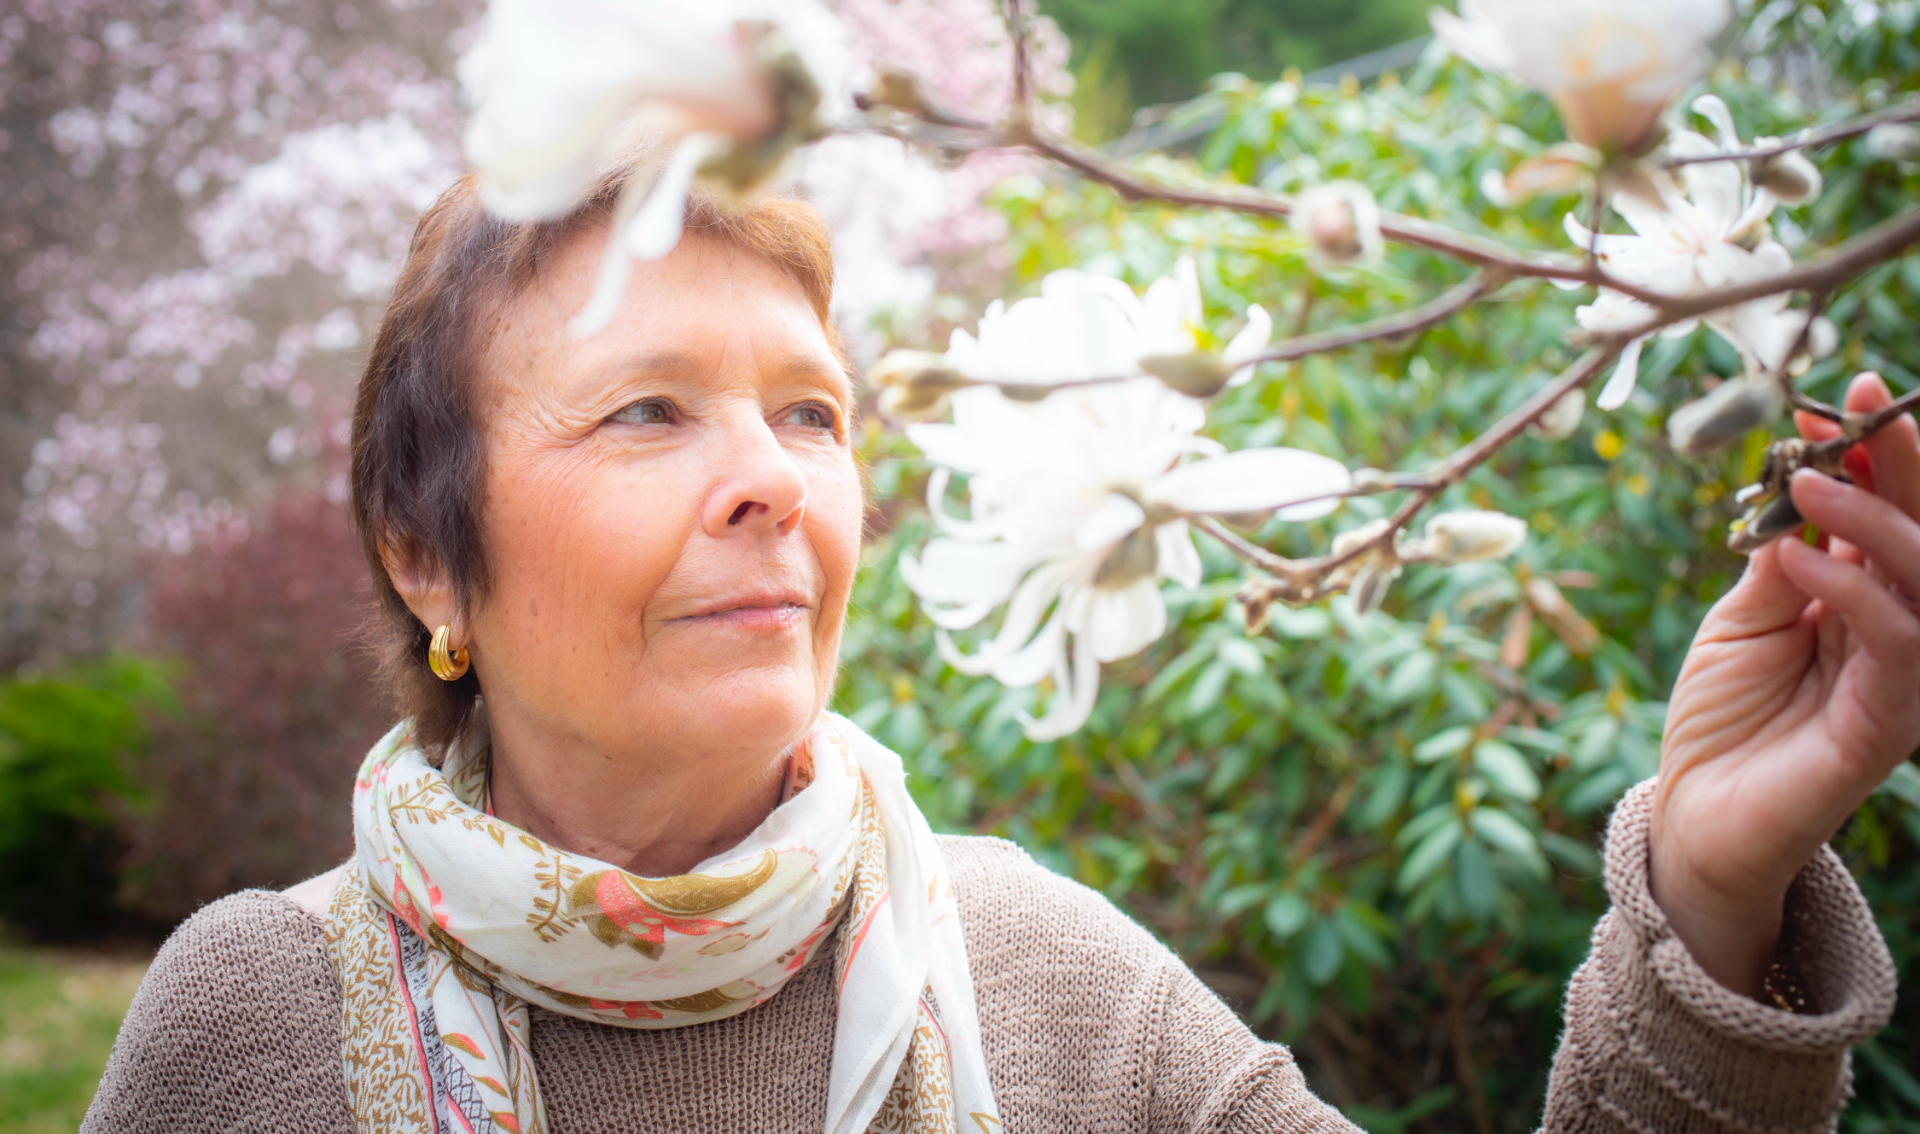 A close-up of Dr. Irwin standing in her garden thoughtfully appreciating a flowering tree, gently grasping one of its branches in her hand.